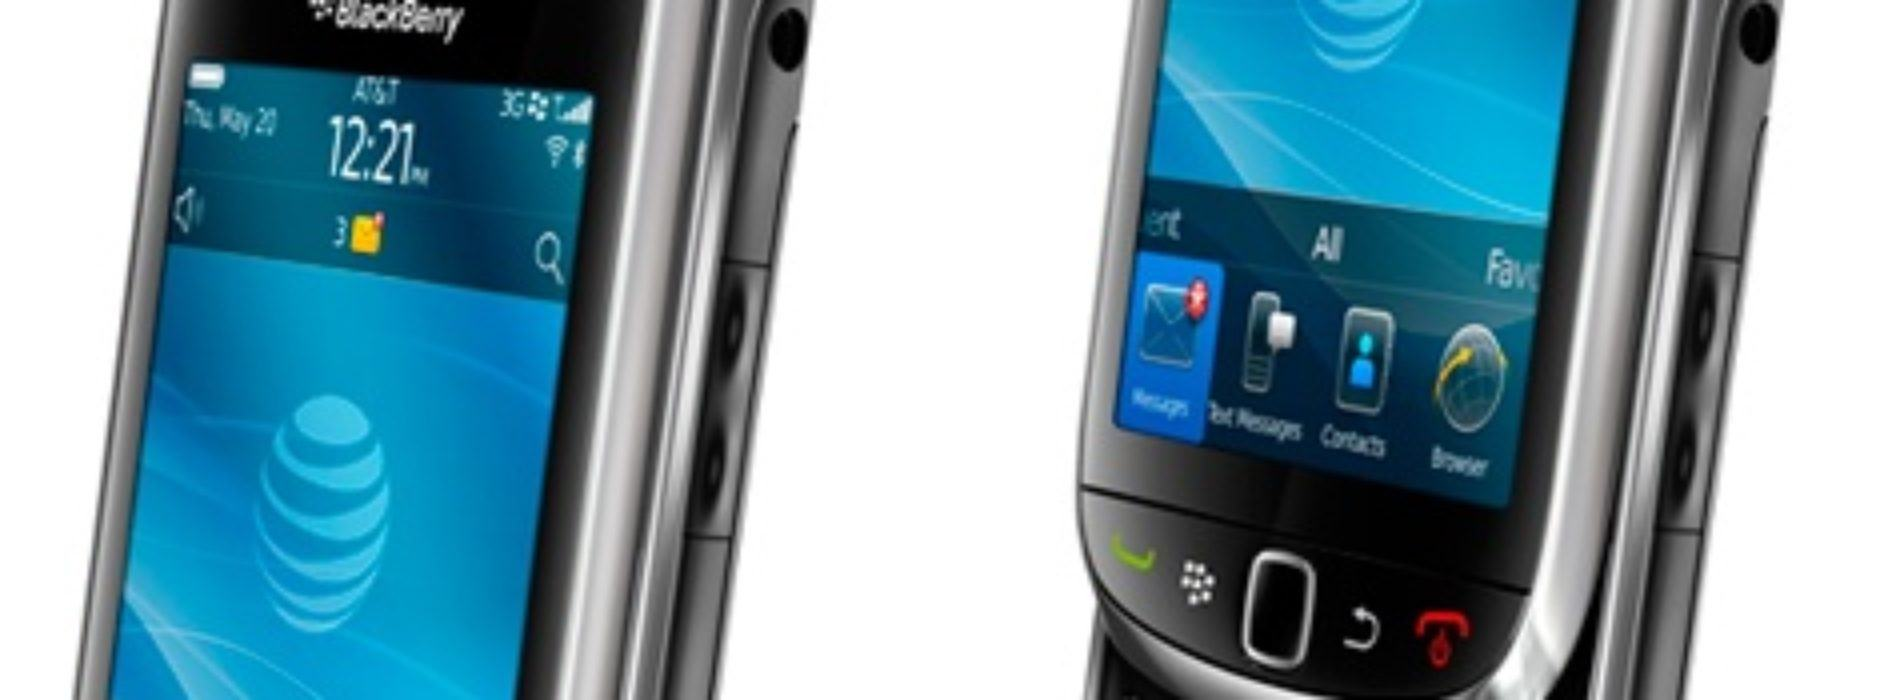 El Blackberry Torch 9800